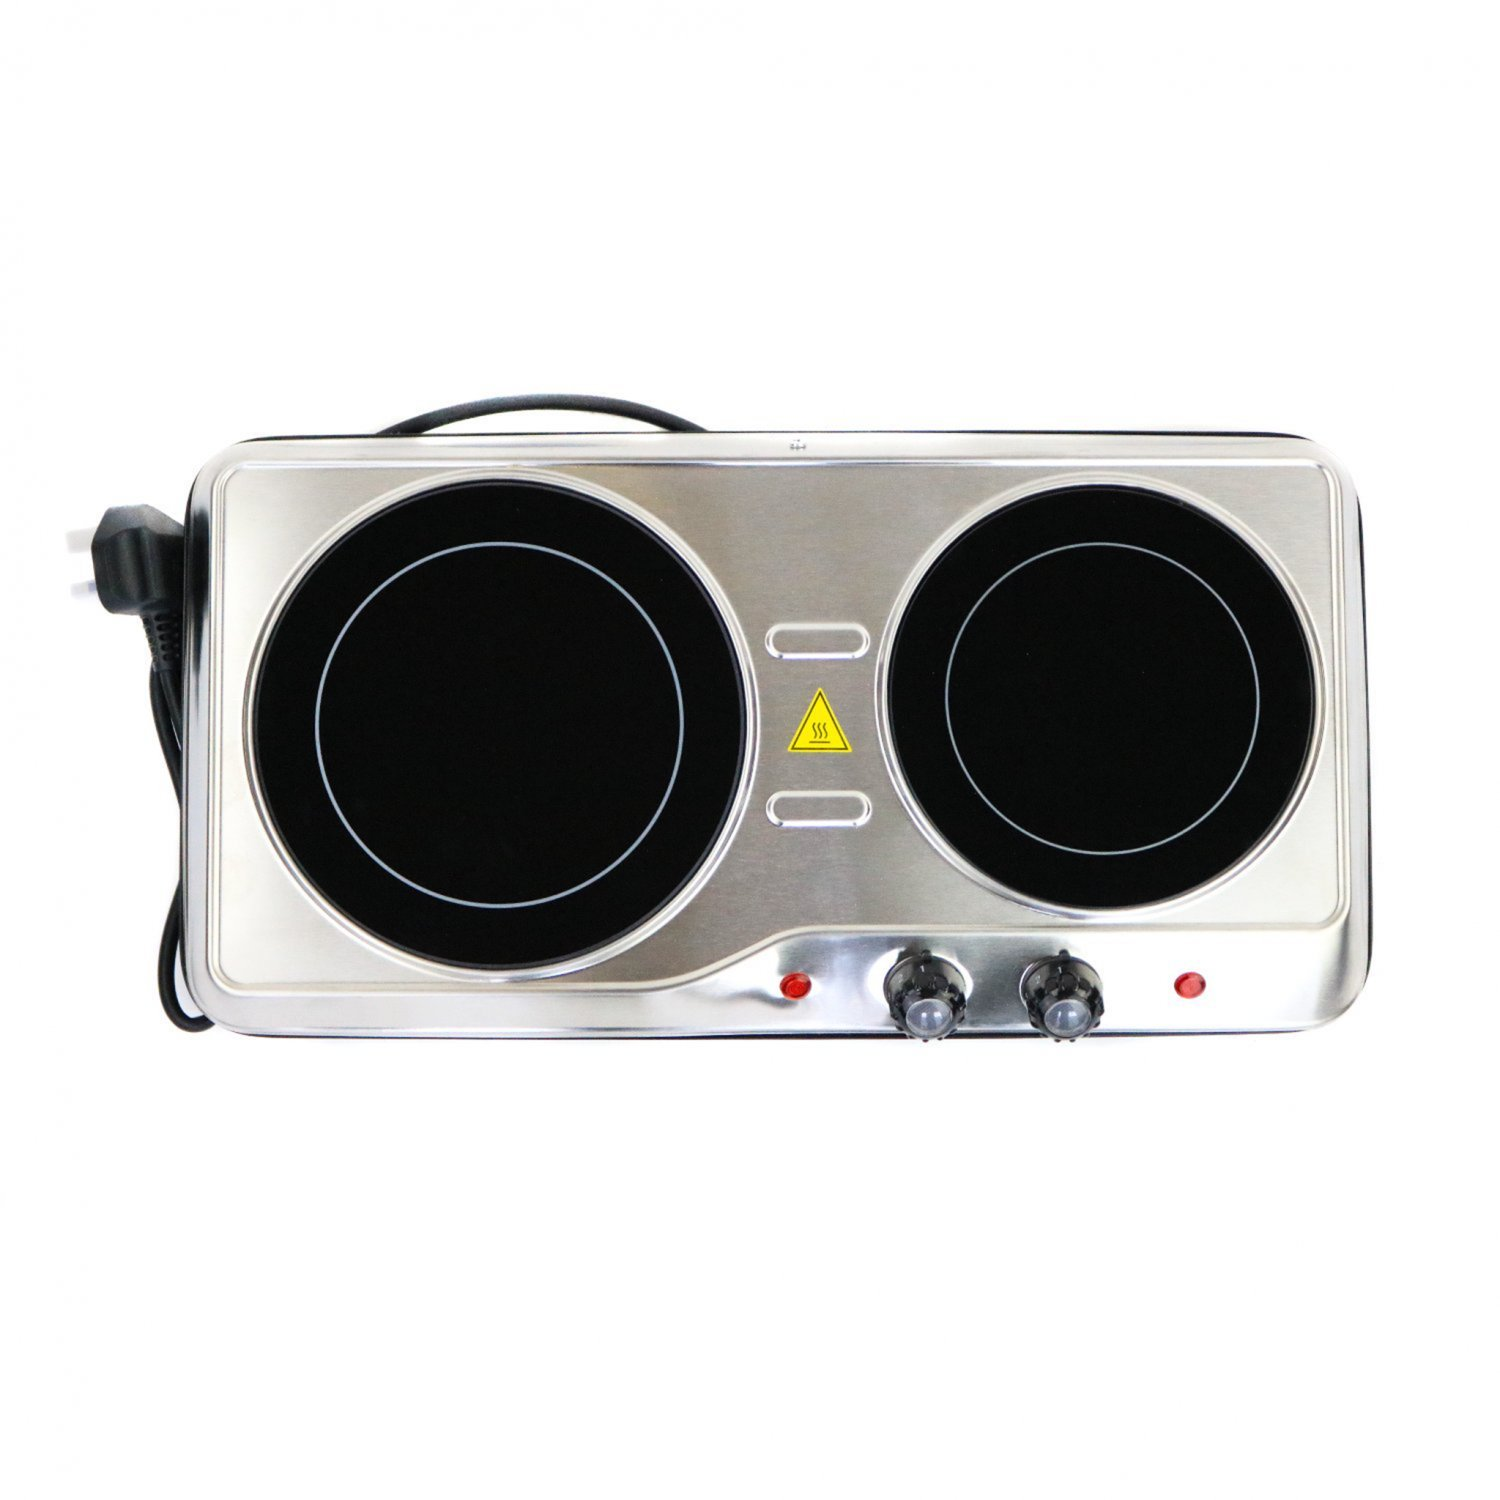 (RU10) 2000W Ceramic Portable Infrared Electric Double Hot Plate Hob The 2000W ceramic hot... - Image 2 of 2